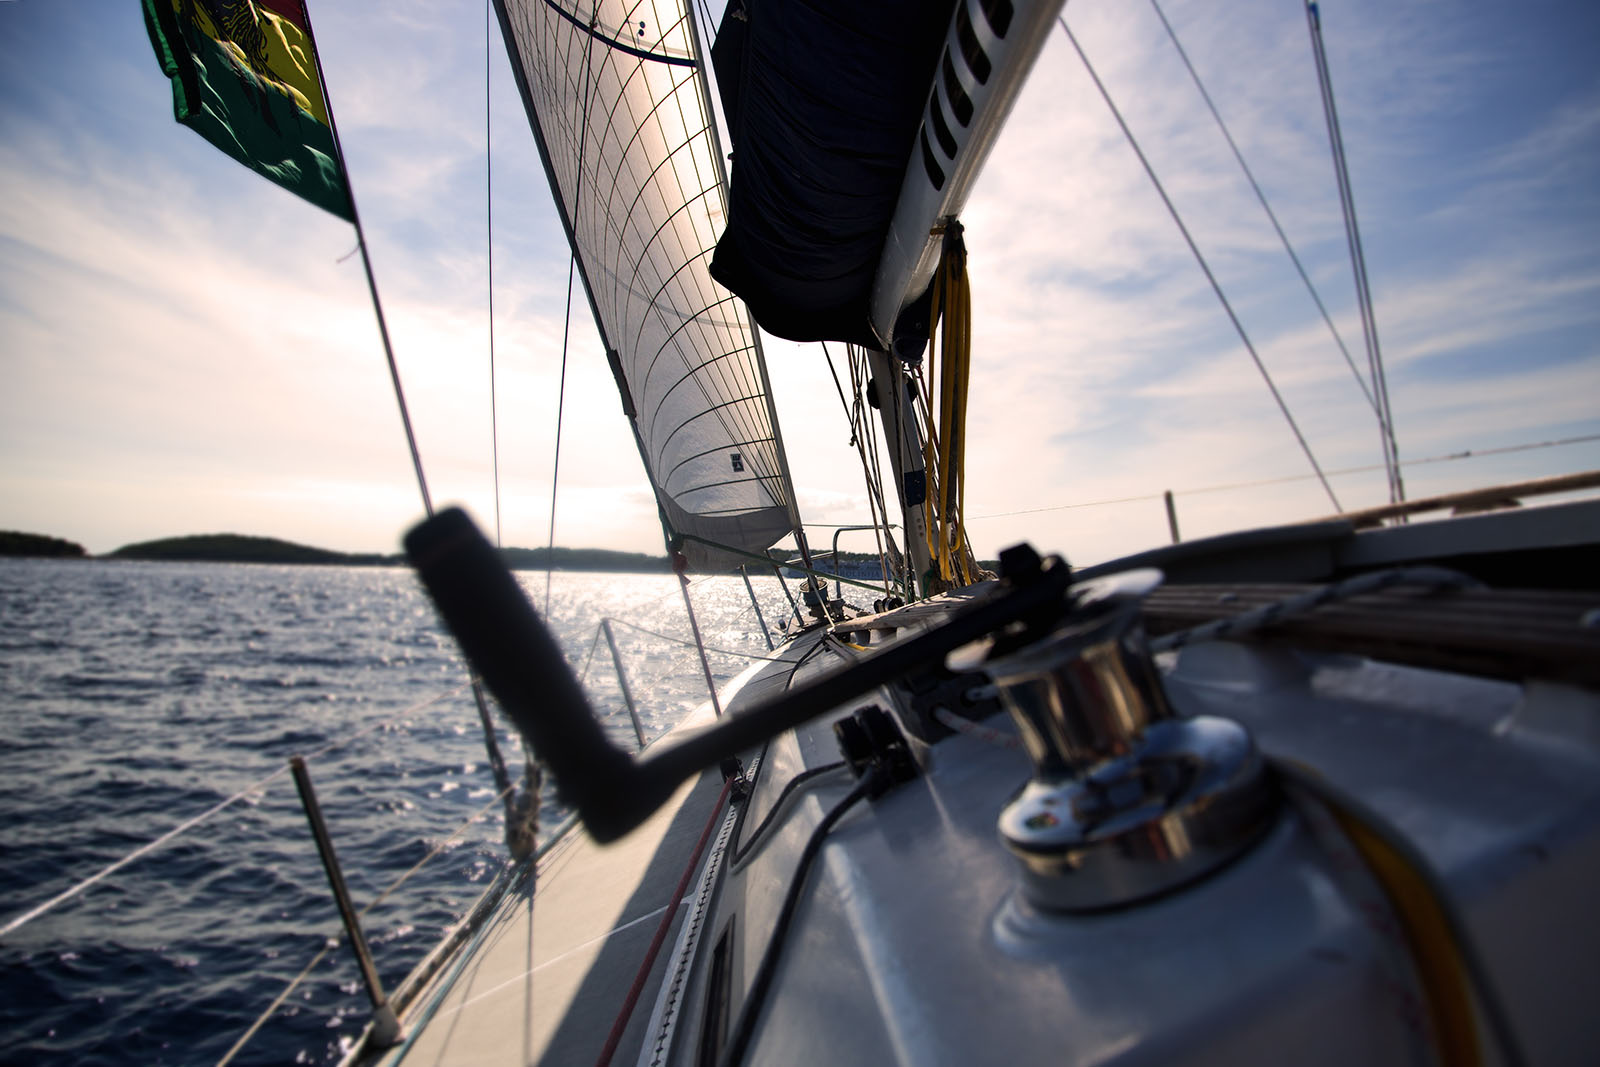 Sailing with sailtrain online RYA courses